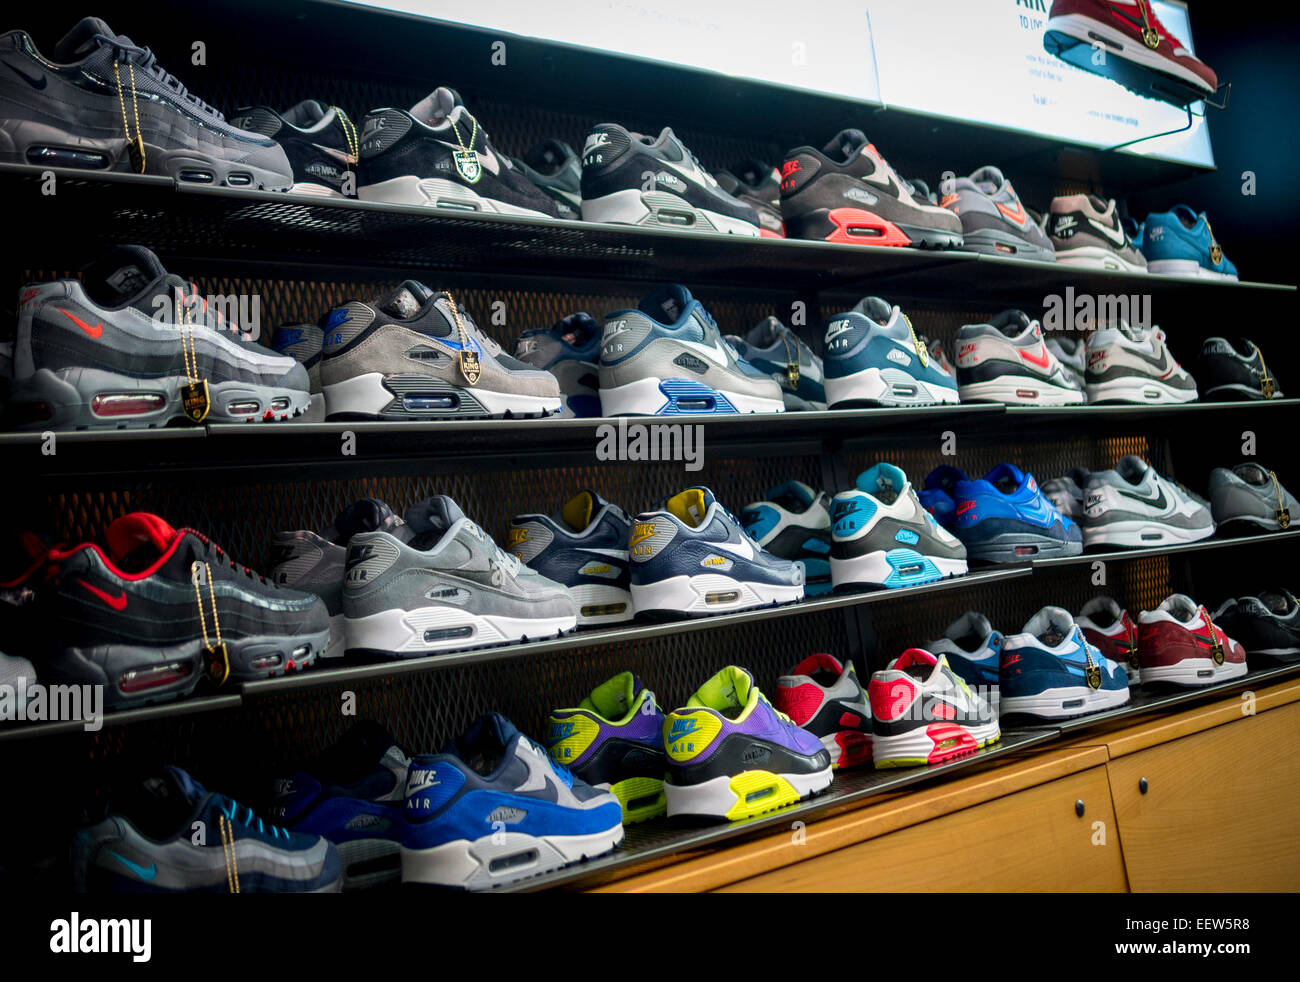 Nike Outlet Store - 70% OFF, We Offer Cheap Nike Shoes, Air Max, Nike Flyknit, Air Force 1,Dunk SB And So On At Nike Clearance Store brainwashr.gq Discount & Great Selection!